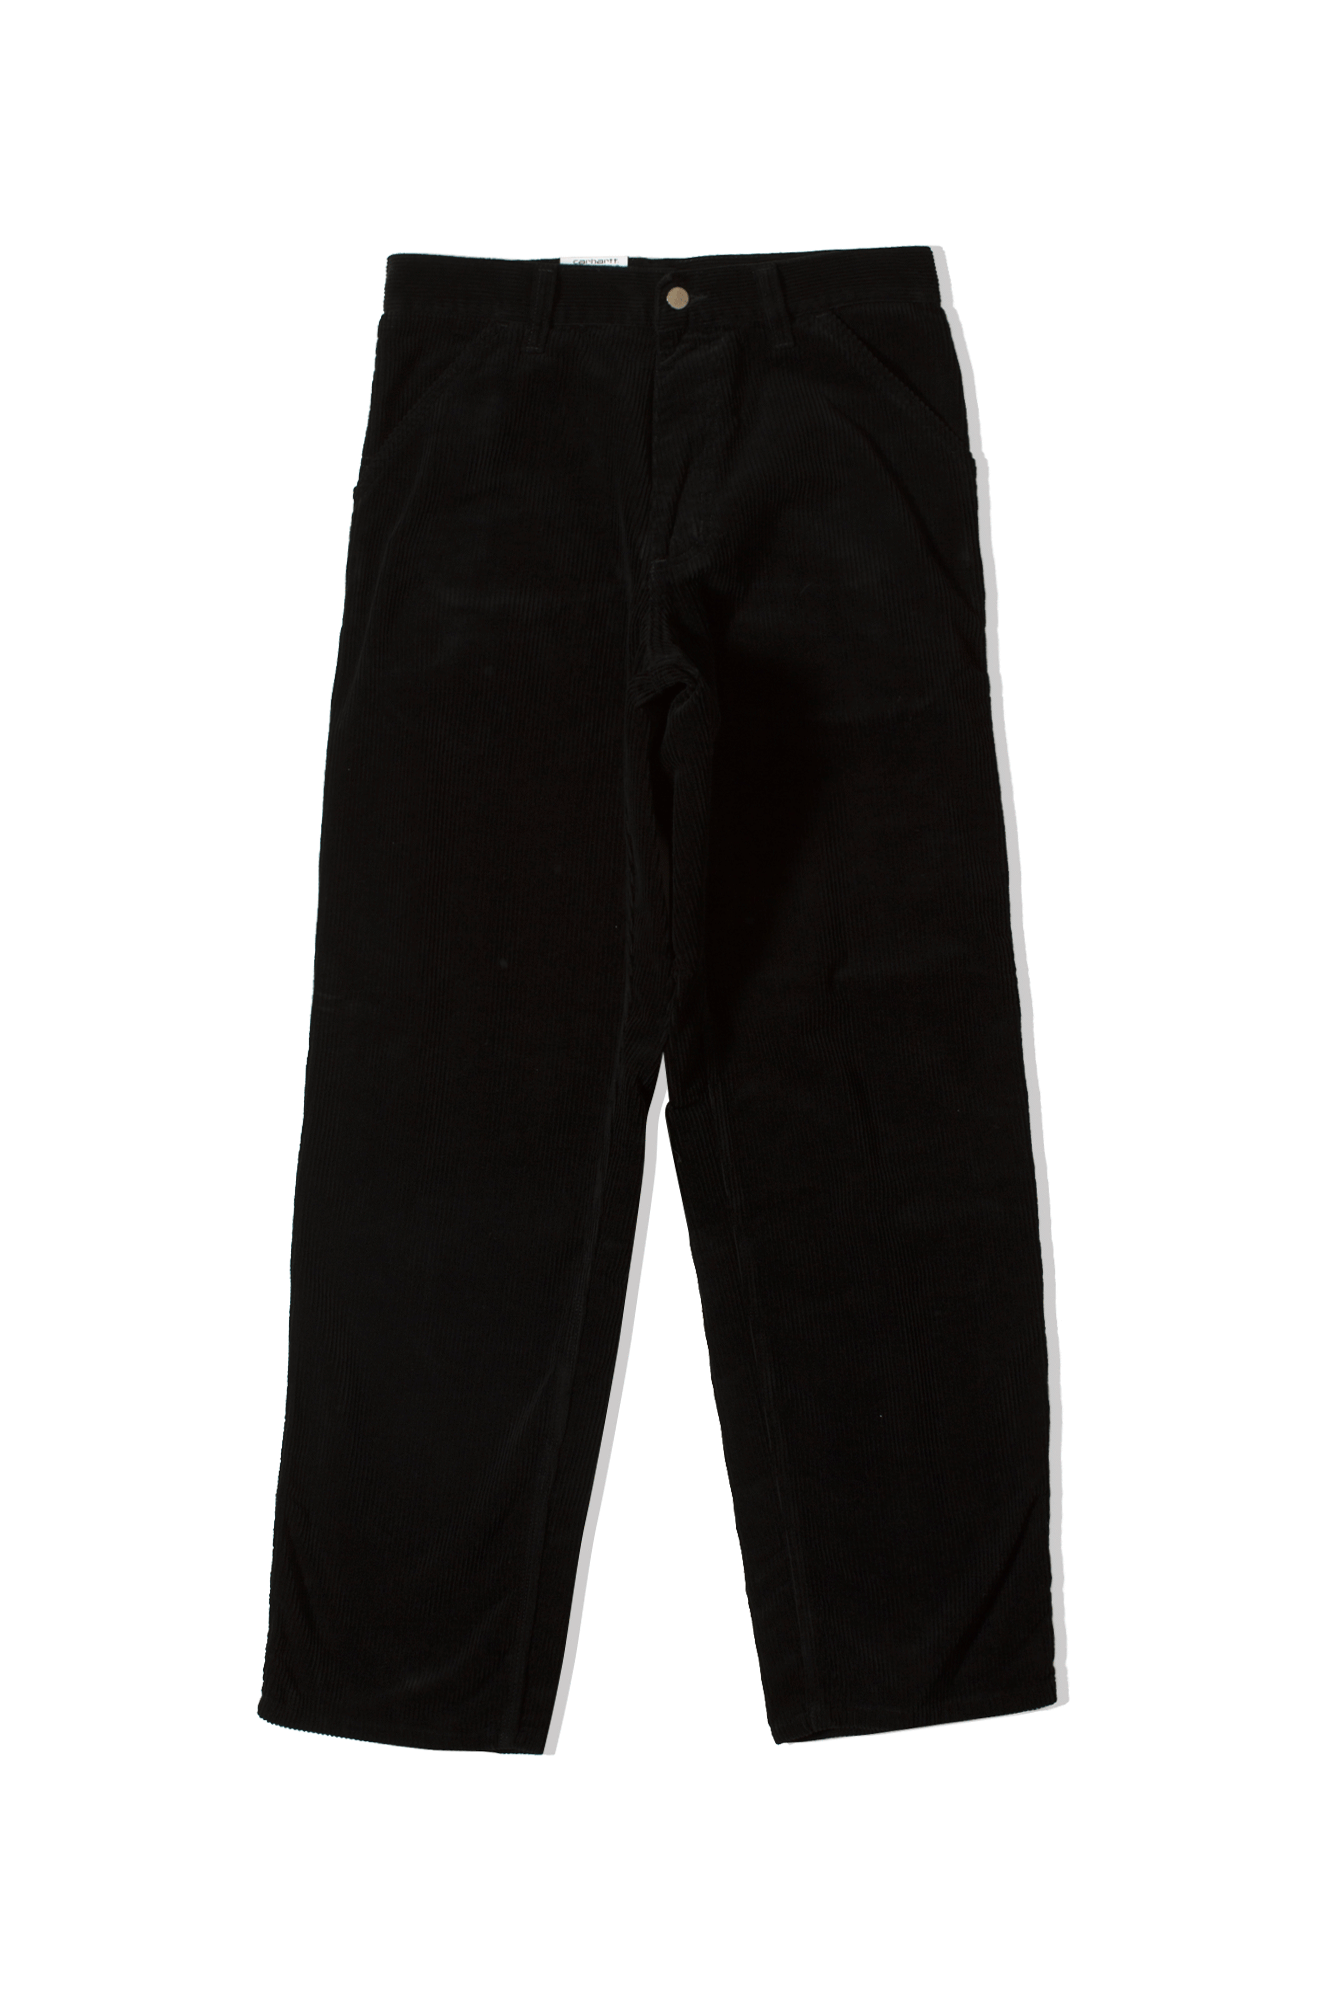 Single Knee Pant x Carhartt Black